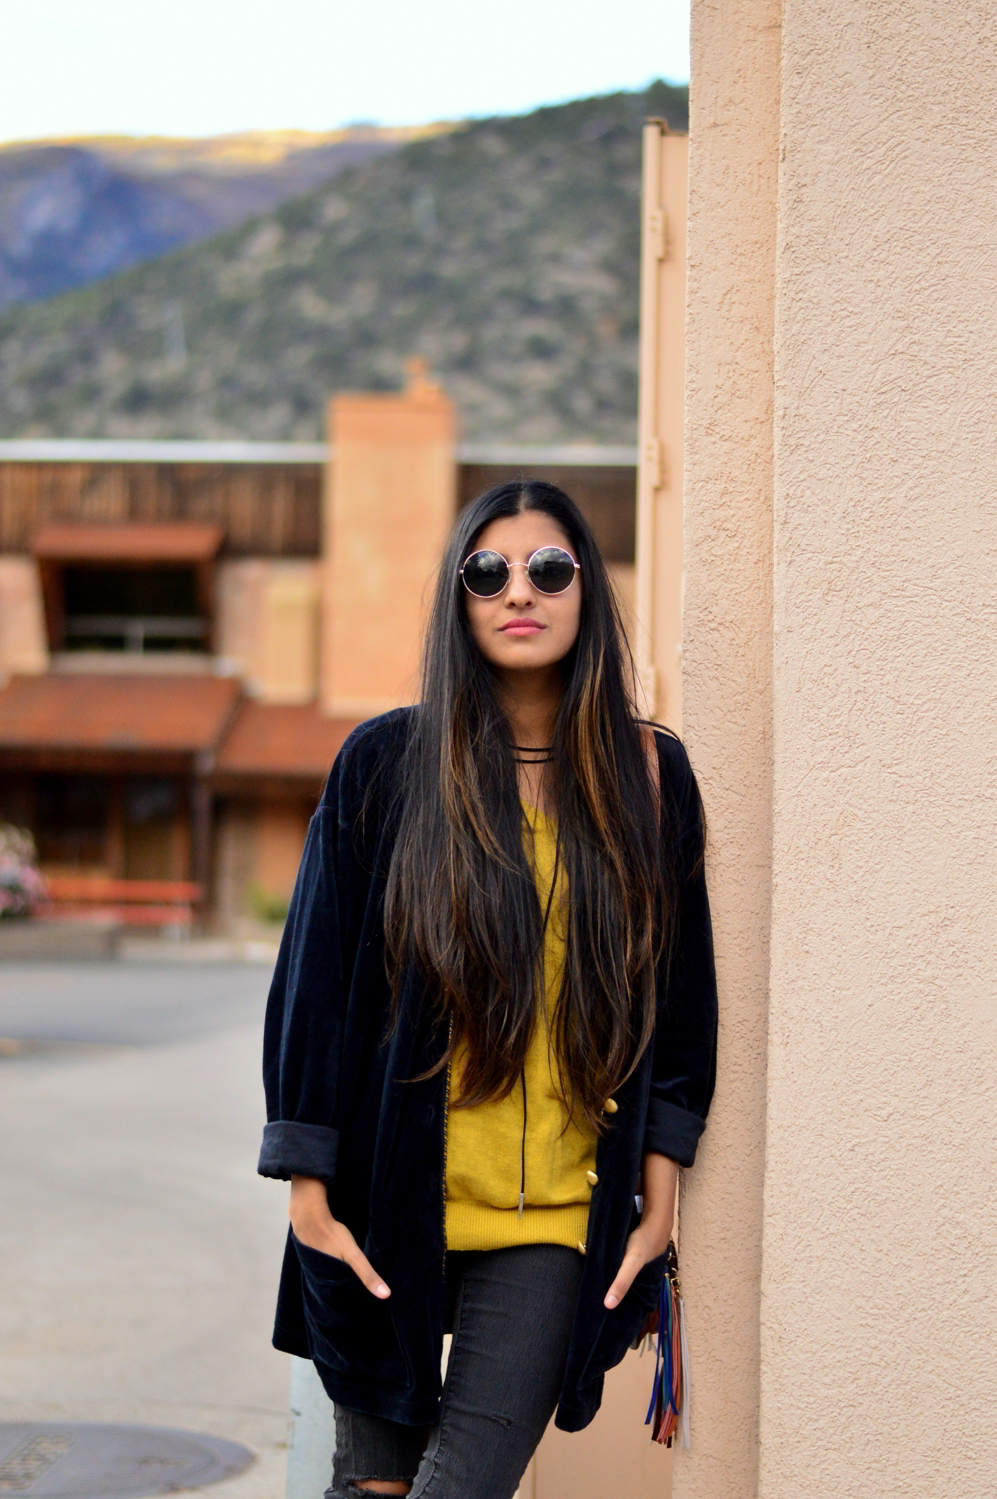 velvet-oversized-cardigan-fall-style-colorado-travel-blogger-outfit-boho-retro 2